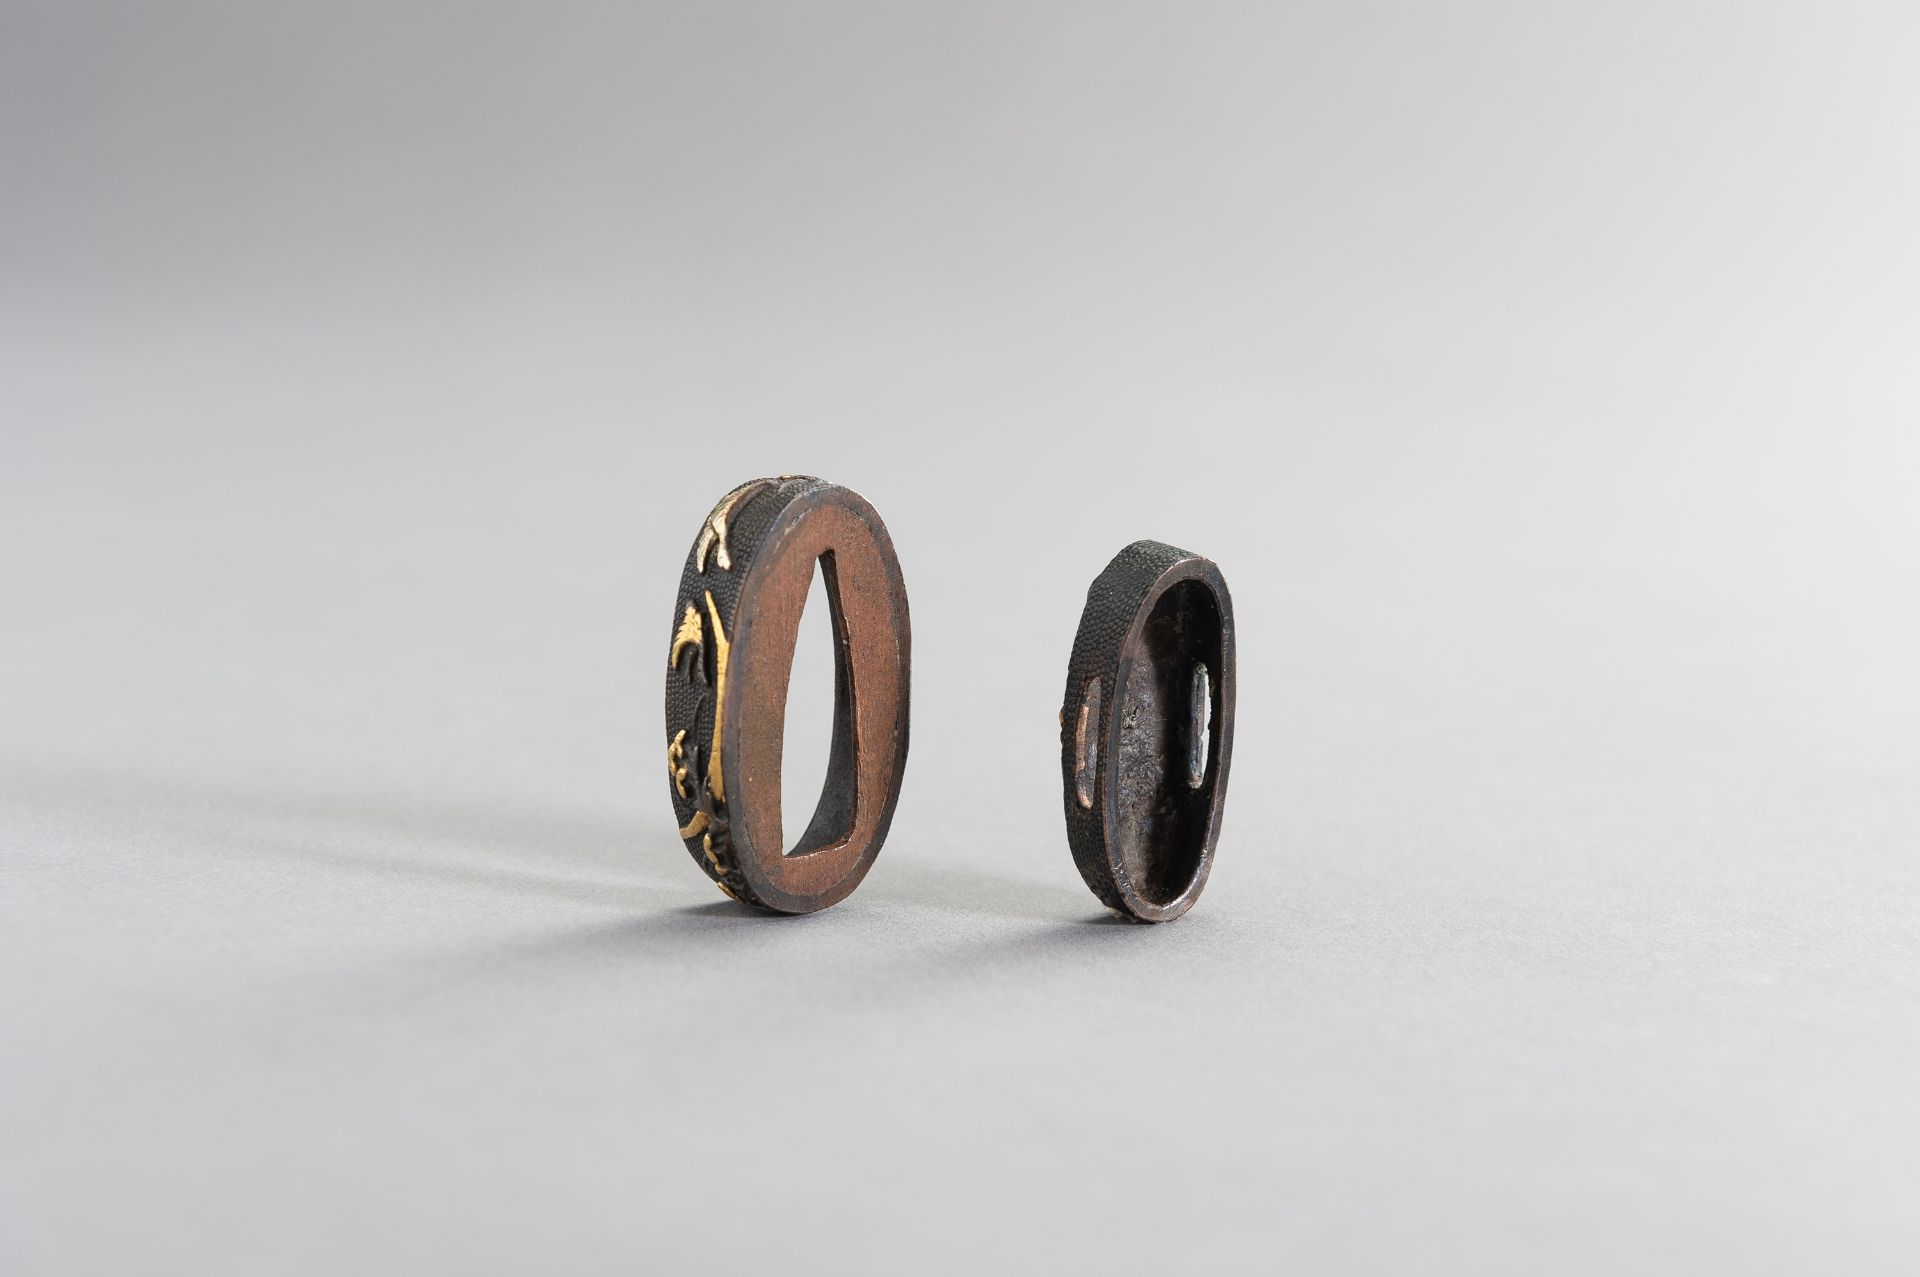 A FINE FUCHI AND KASHIRA WITH GEESE AND MOON - Image 7 of 7